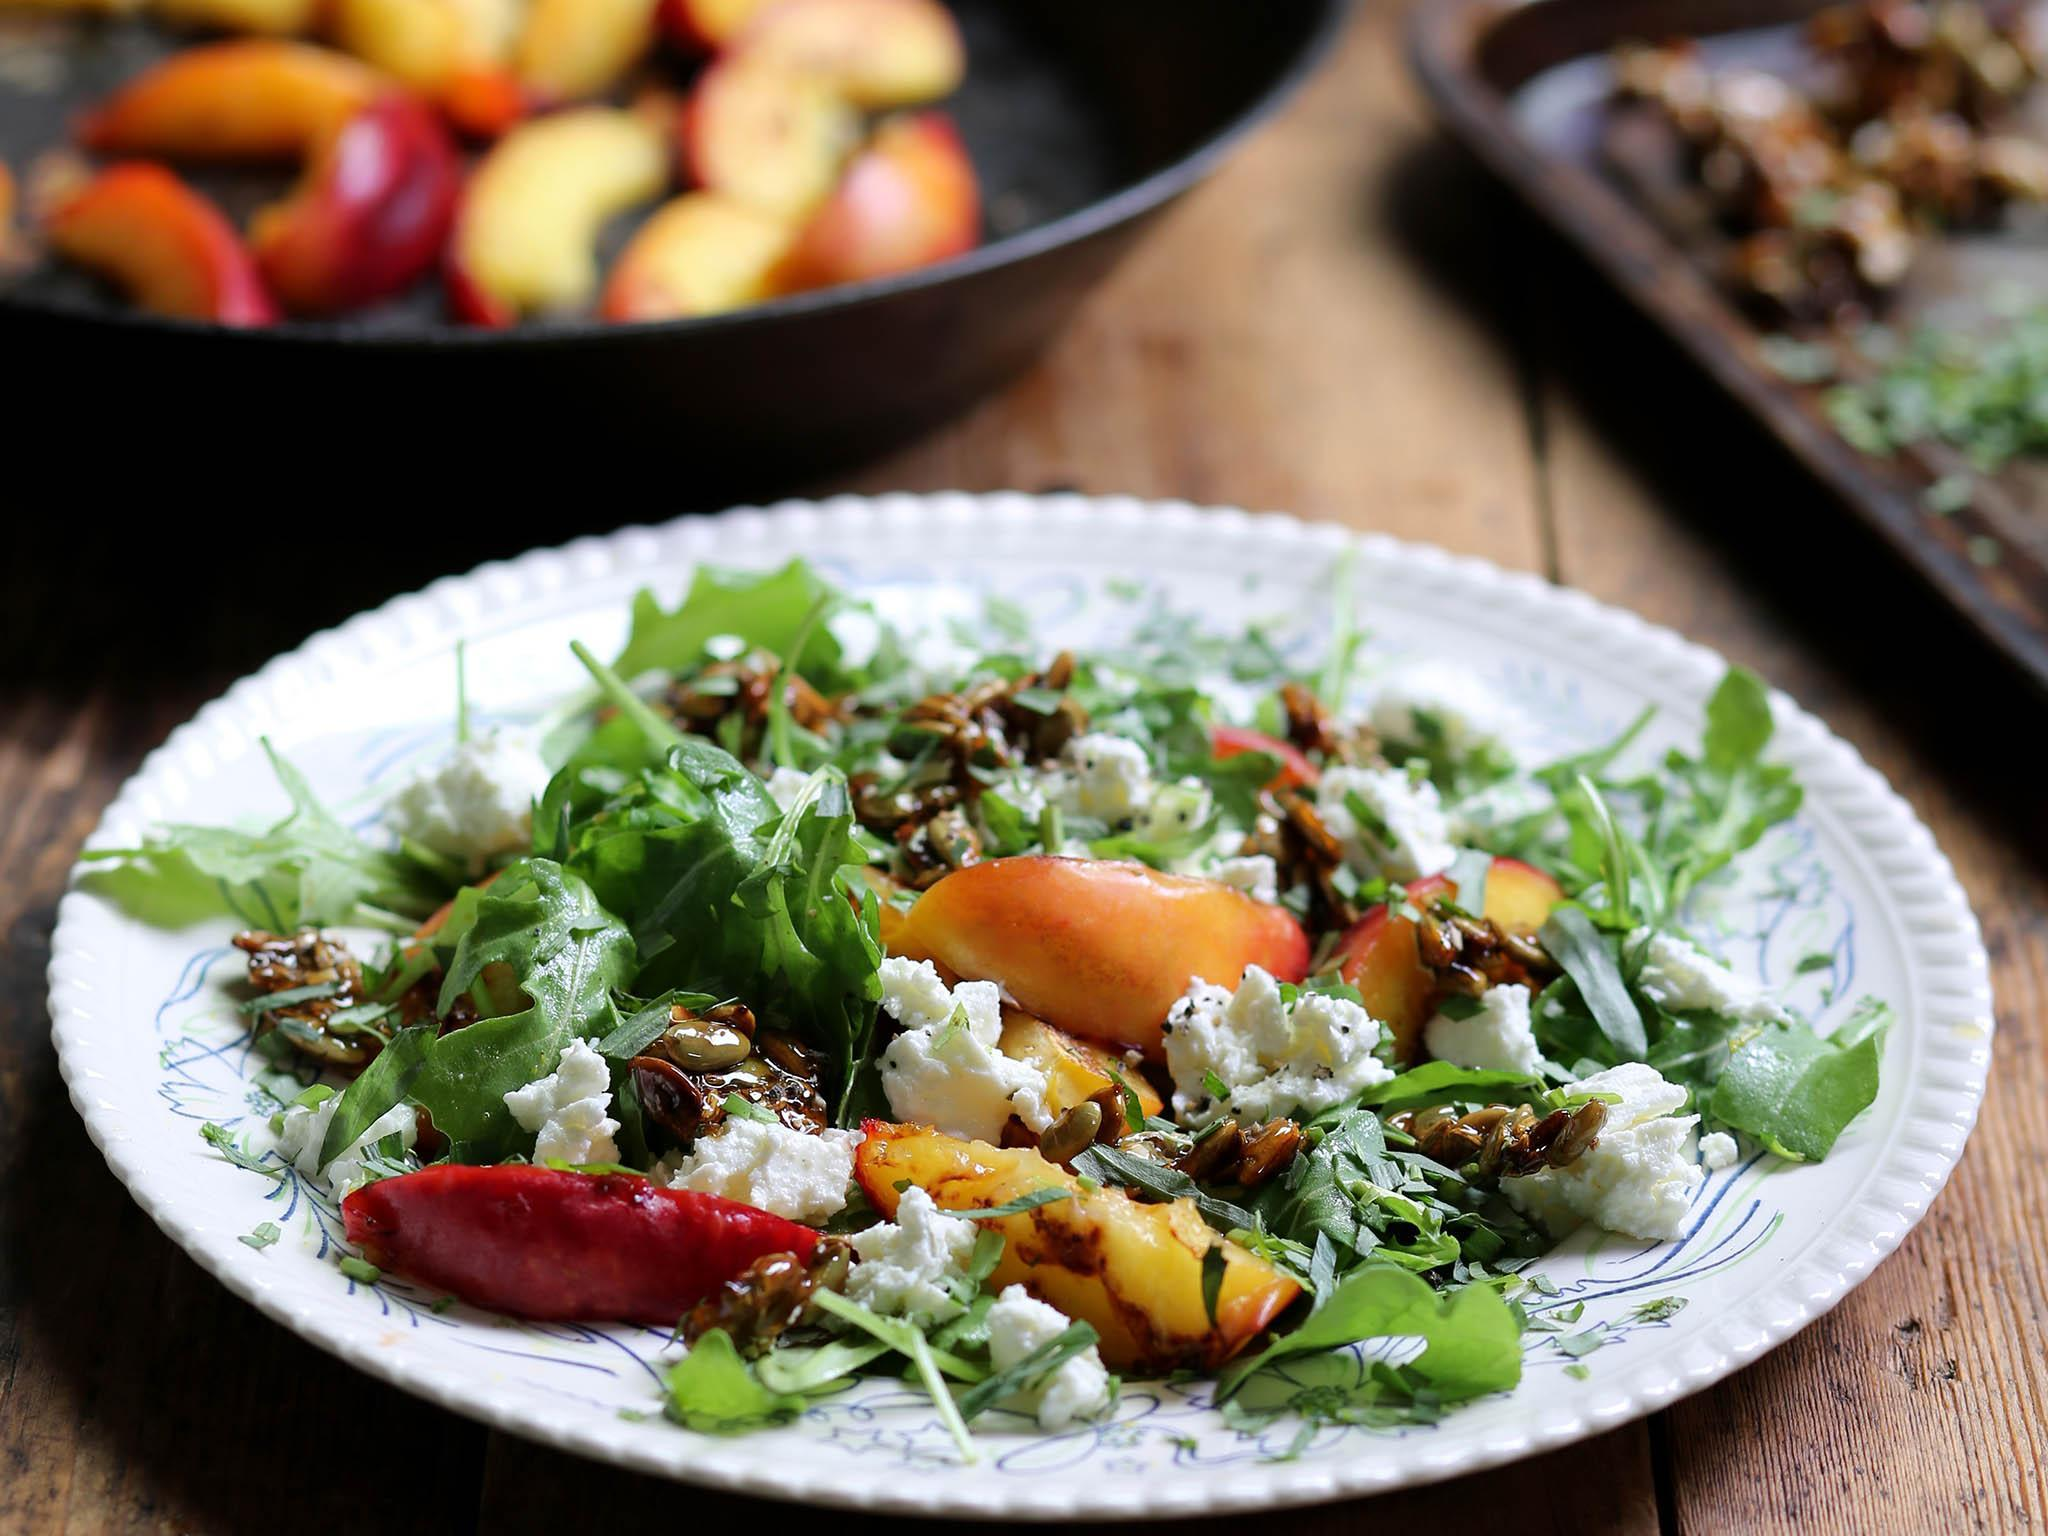 How to make griddled nectarine salad with honeyed pumpkin-seed brittle